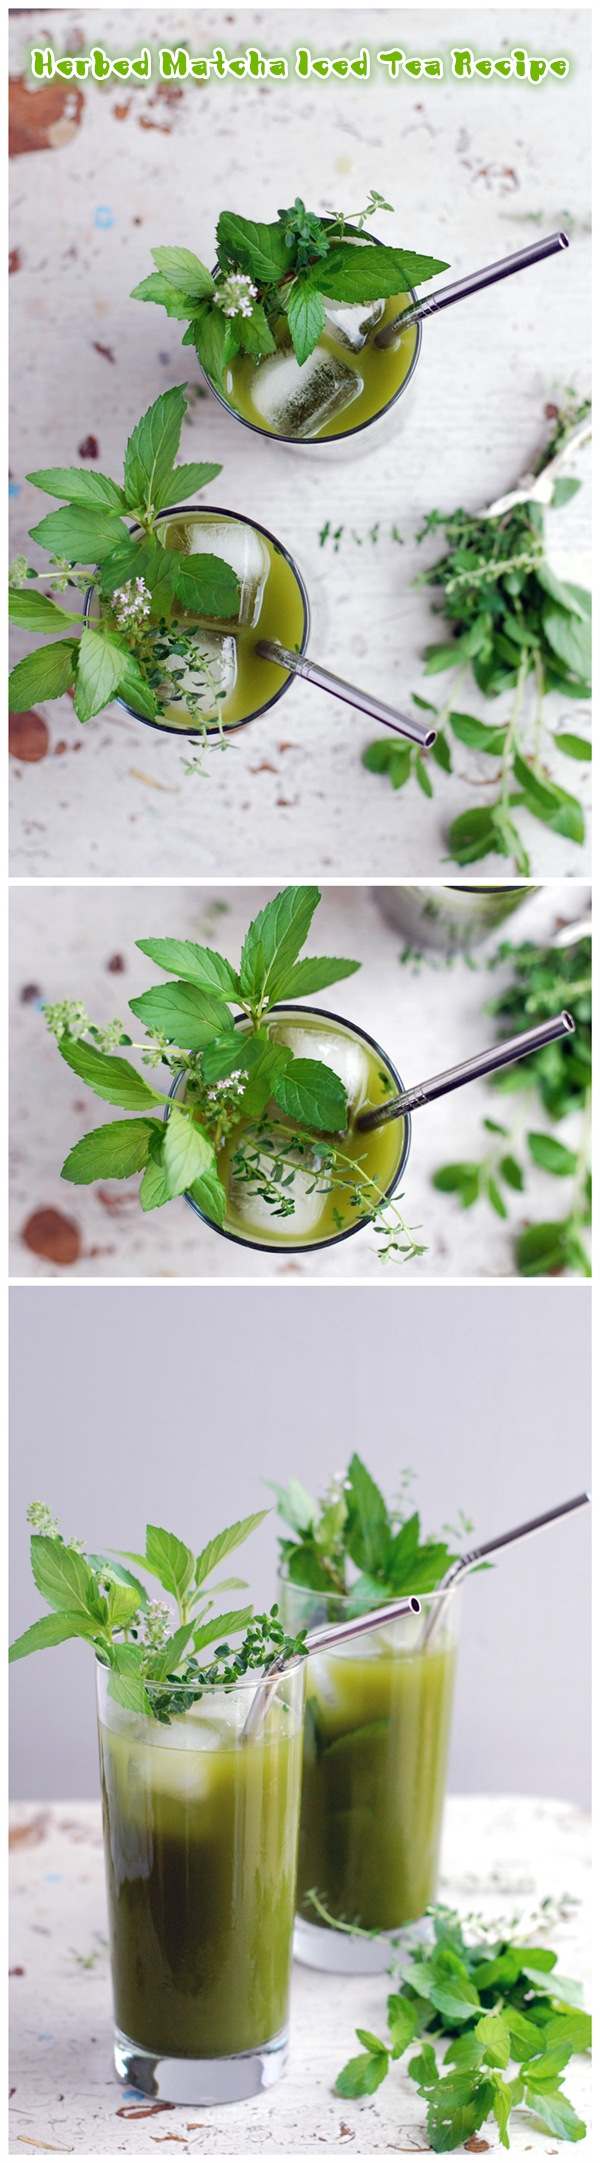 Herbed Matcha Iced Tea Recipe